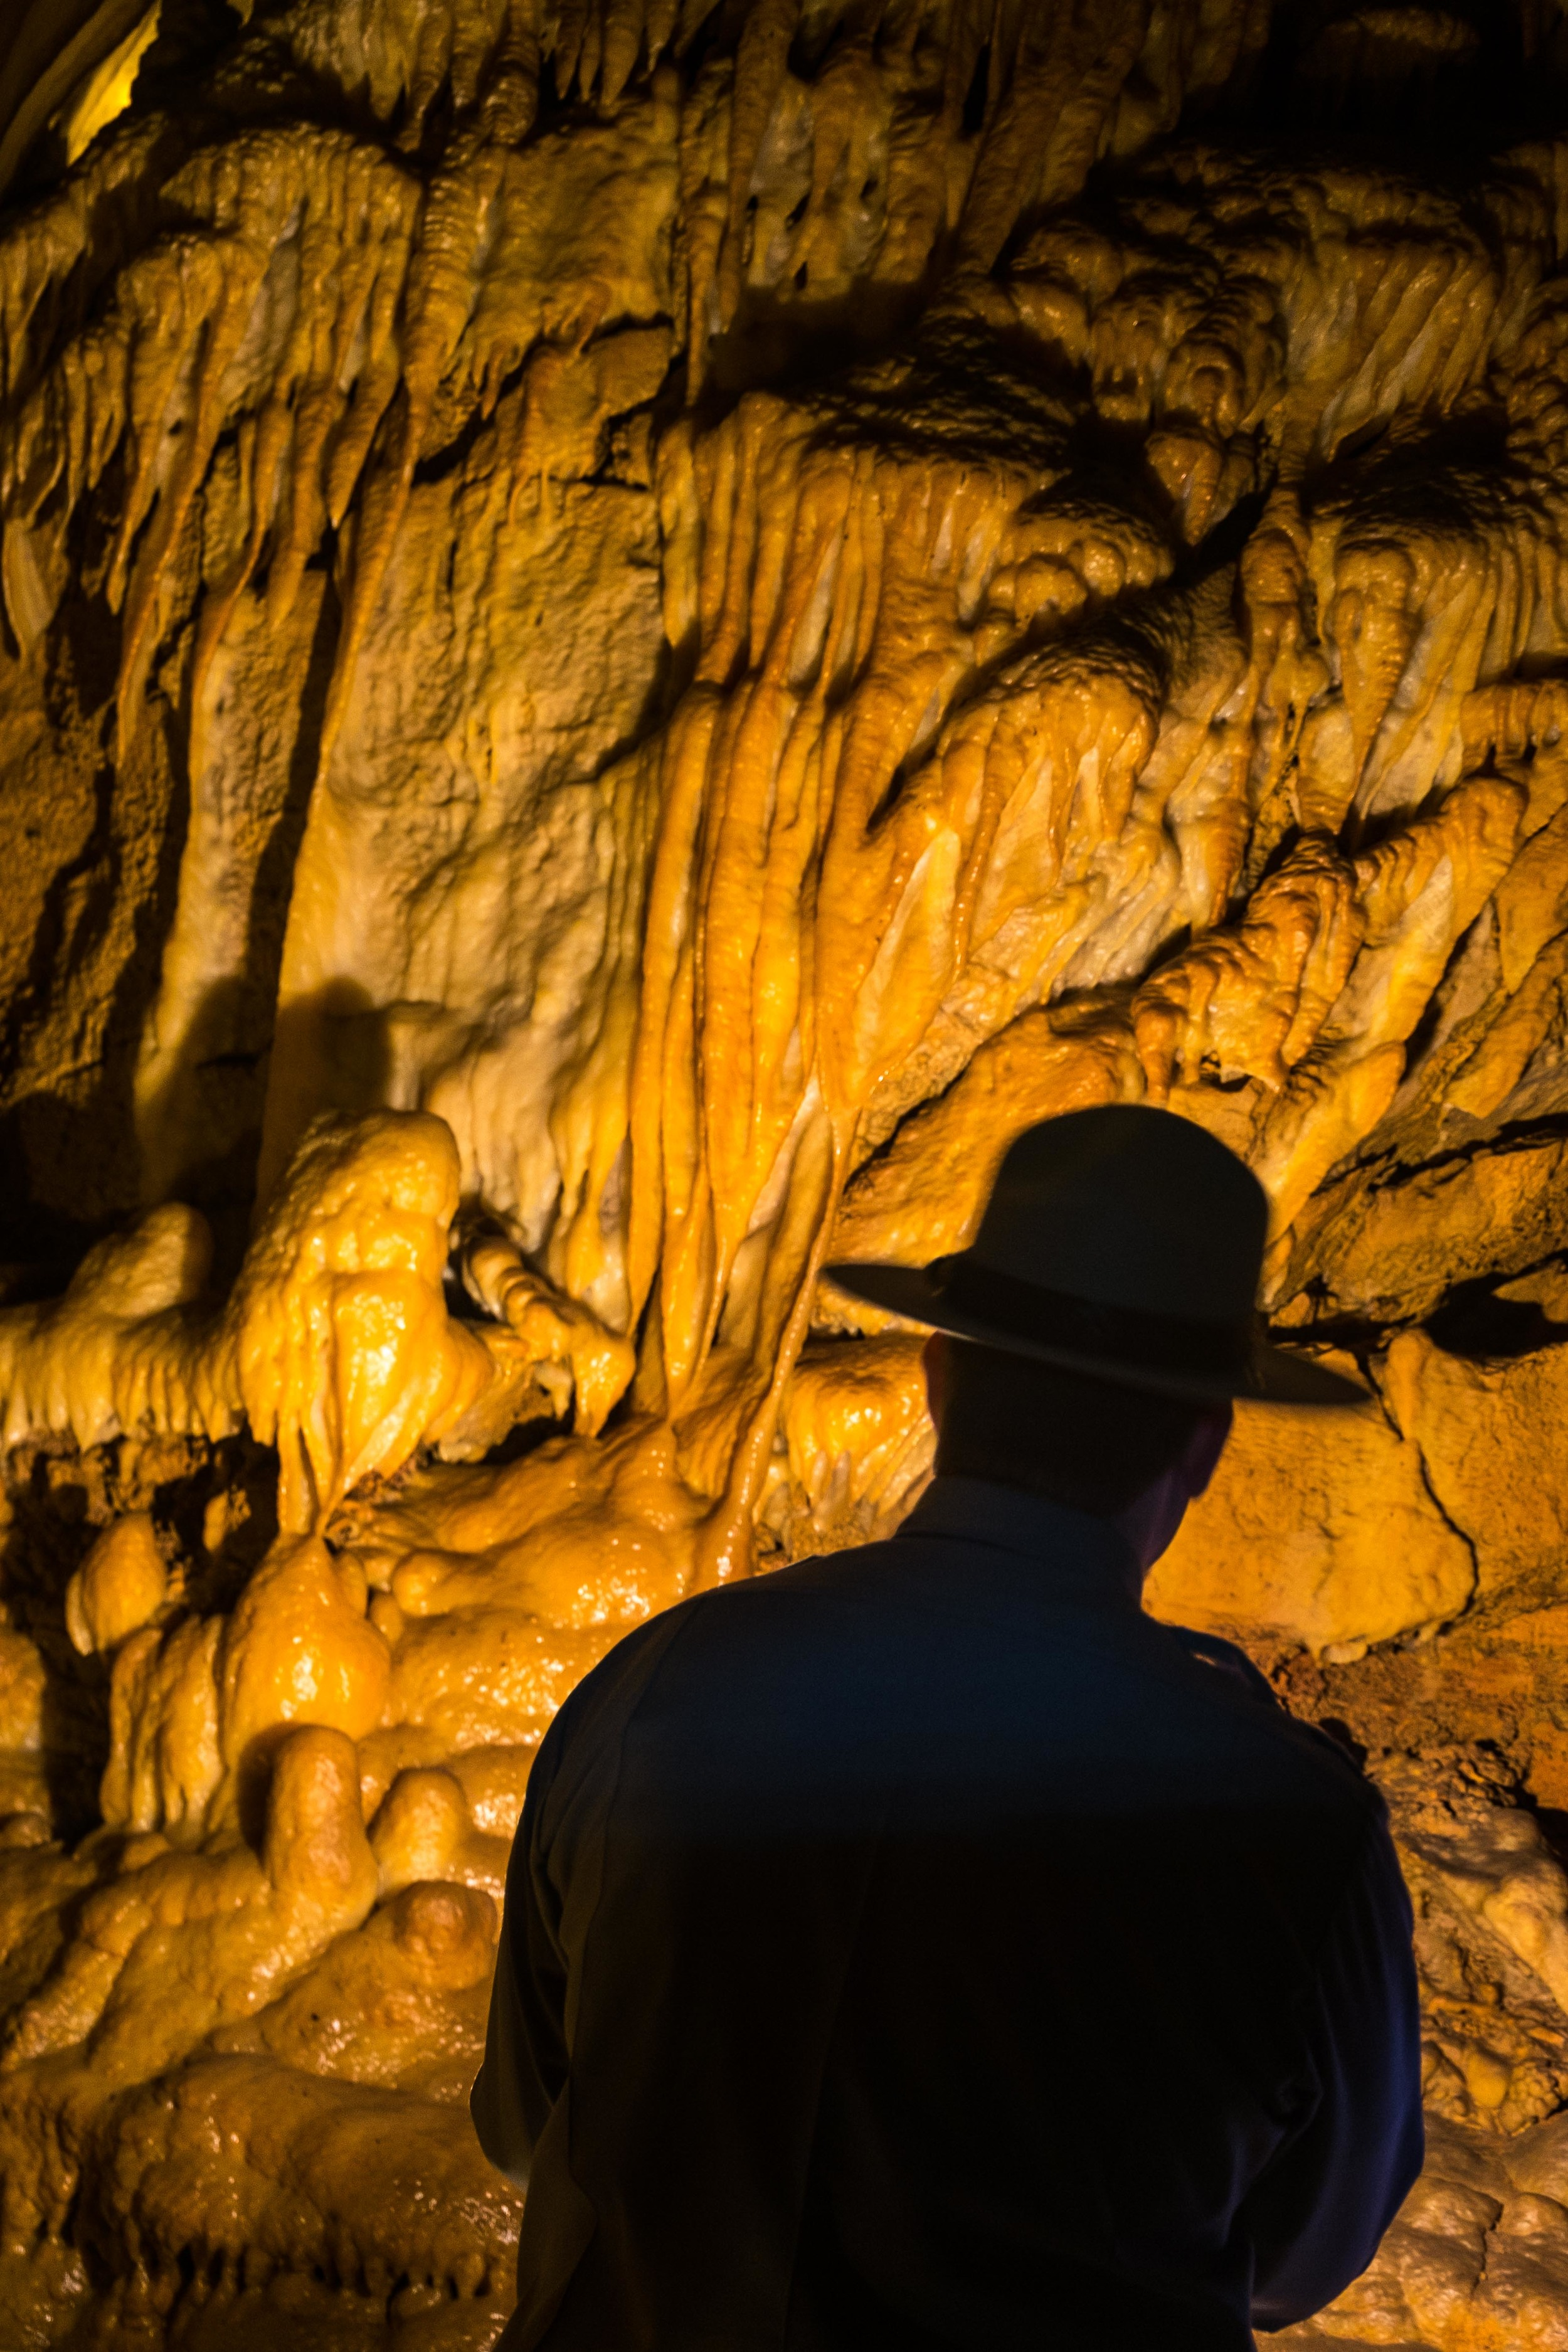 Incredible formations in the cave.